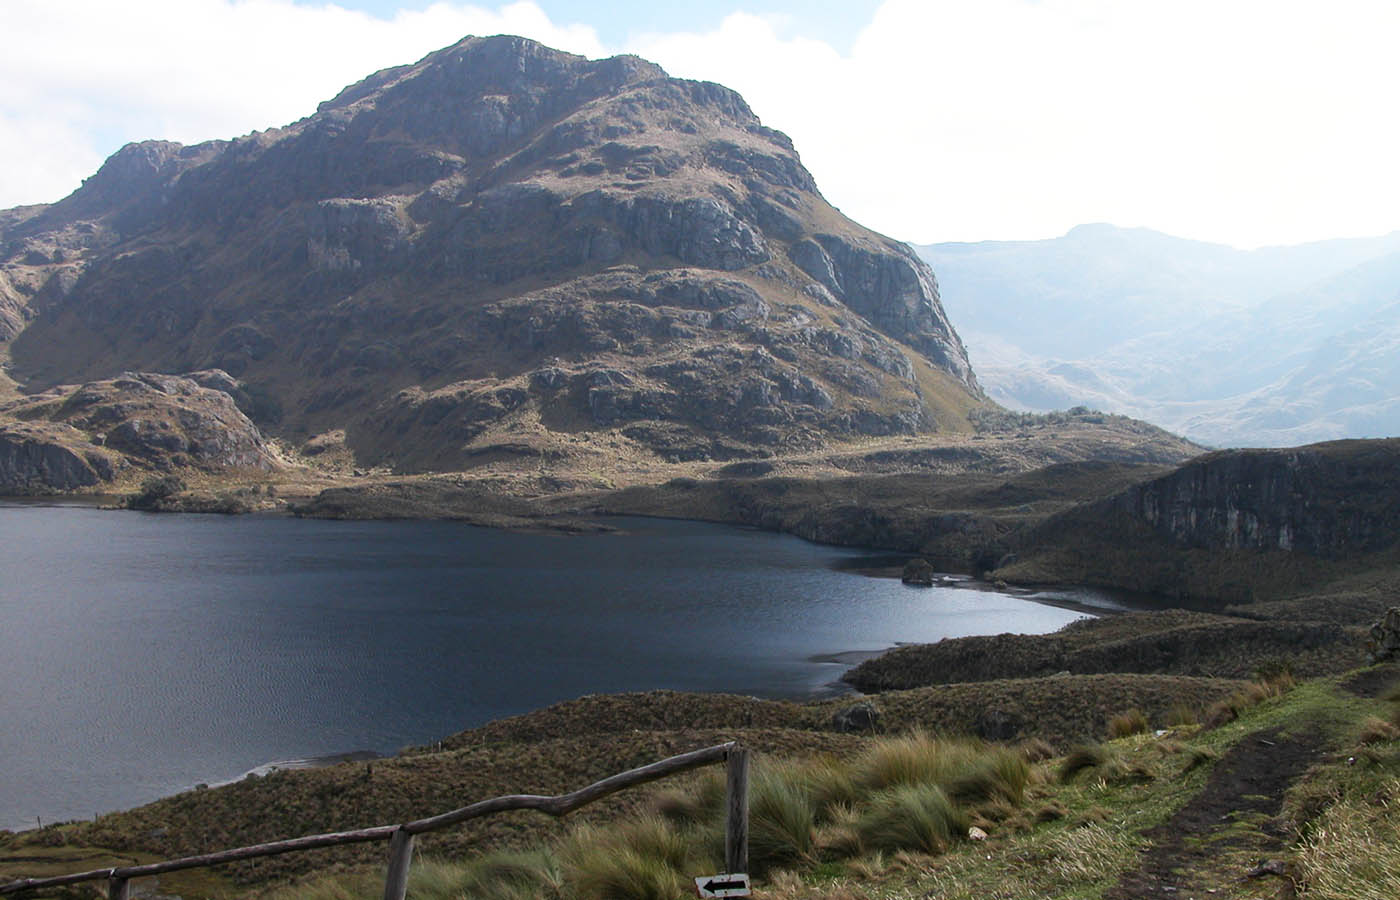 Cajas National Park - This national park has a variety of possible hikes for visitors to take and is located in Cuenca in the Azuay province. Make sure you are used to the high altitude before beginning your hike as the park is between 3,100 meters and 4,450 meters above sea level. Since this park is so large and because there are so many possible hikes to take, we recommend that you either chose a tour or spend time planning your hikes in advance. The hikes vary in difficulty and time to complete ranging from a few hours to a few days. The most popular hike is an eight-kilometer trail that starts from the information point and ends back at the highway.